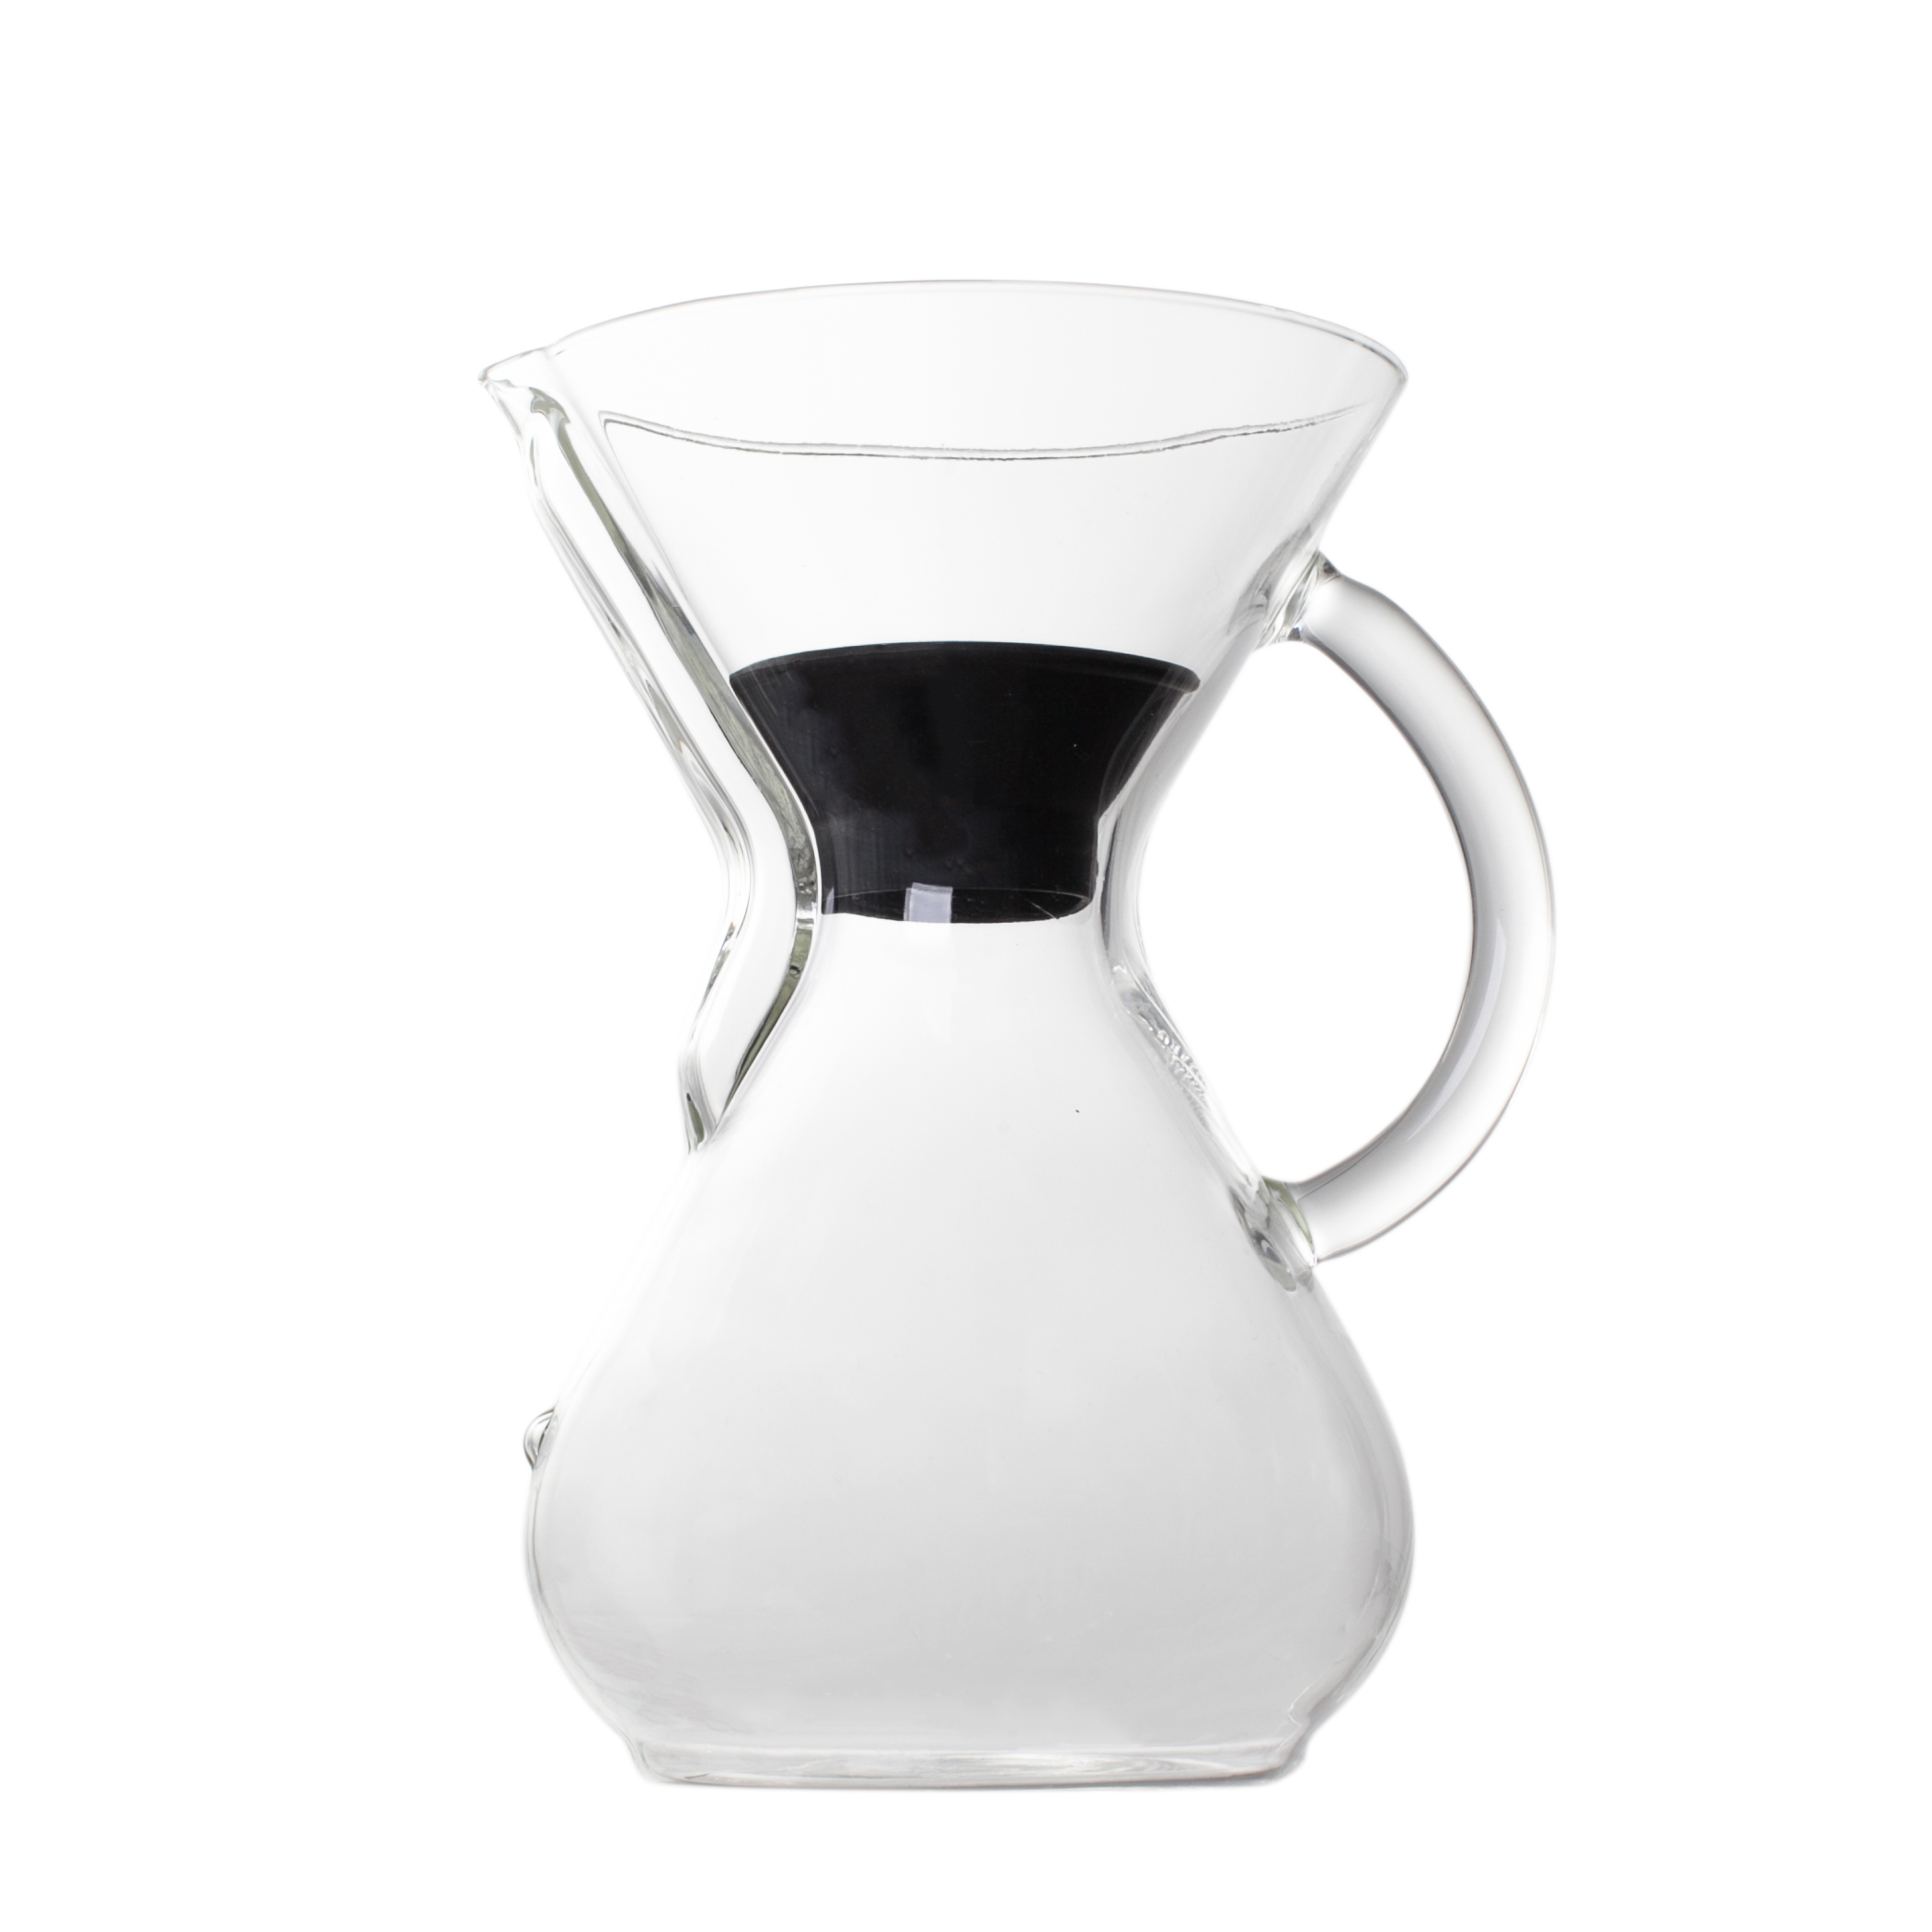 Able Heat Lid for Chemex Brewer